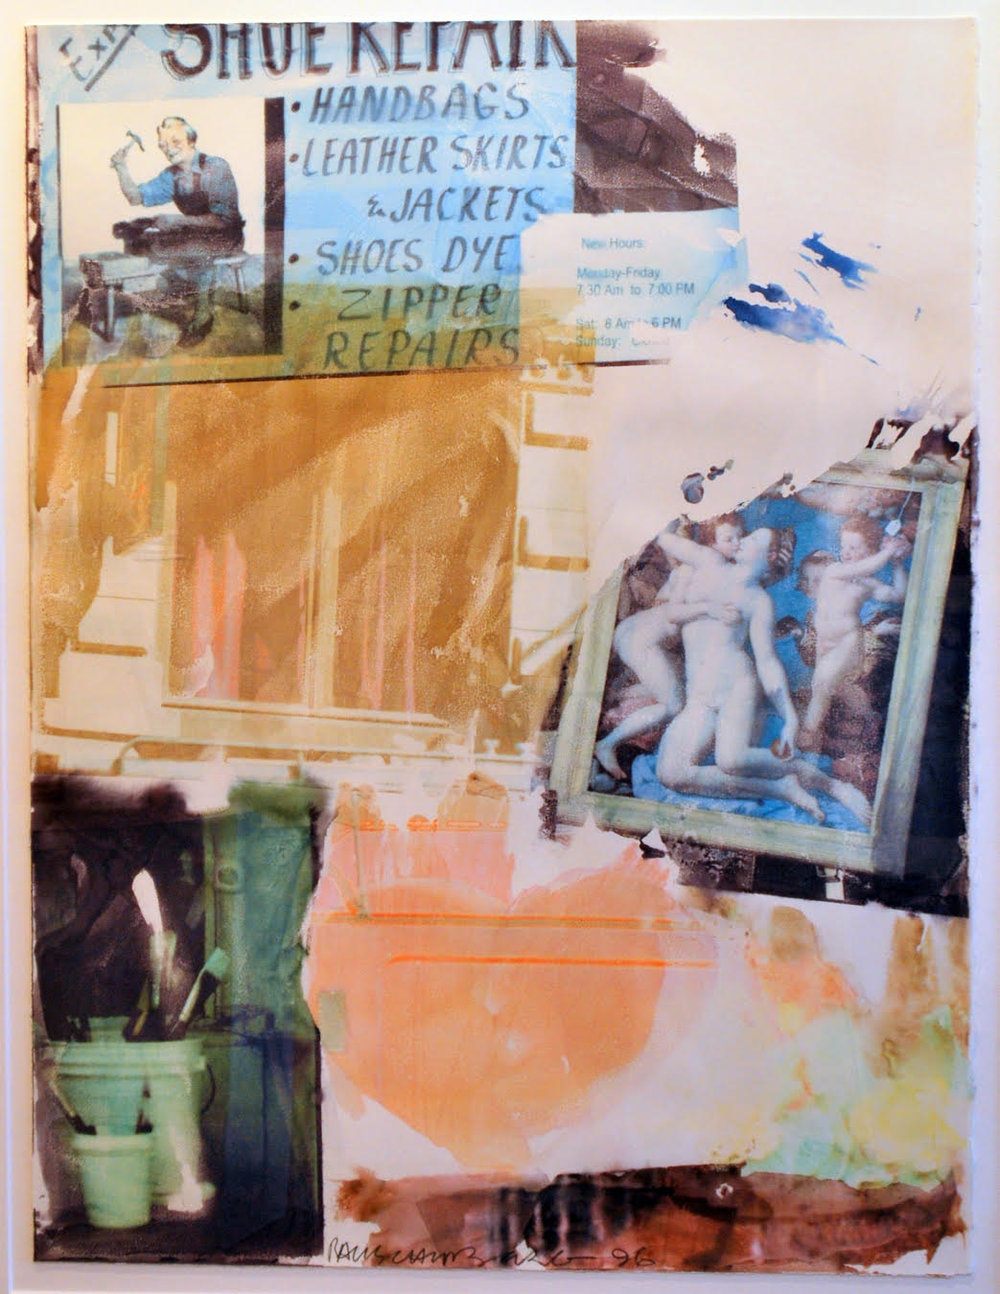 Robert Rauschenberg. Heartistic Call (Anagram), RR.96.147, 1996